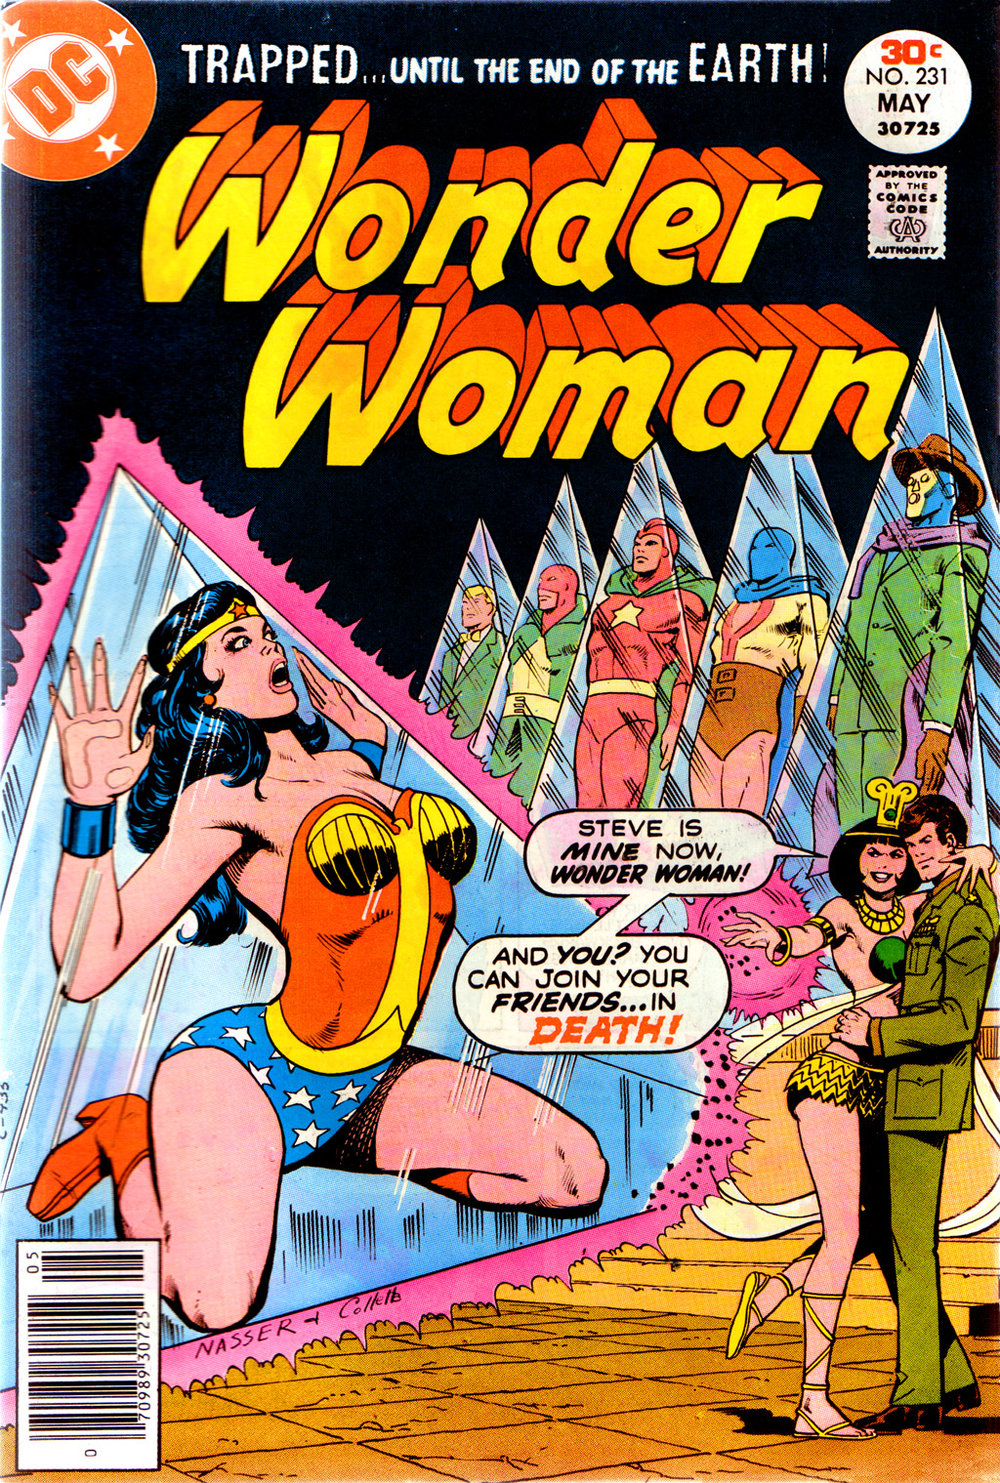 Wonder Woman (1942) #231, cover penciled by Mike Nasser & inked by Vince Colletta.